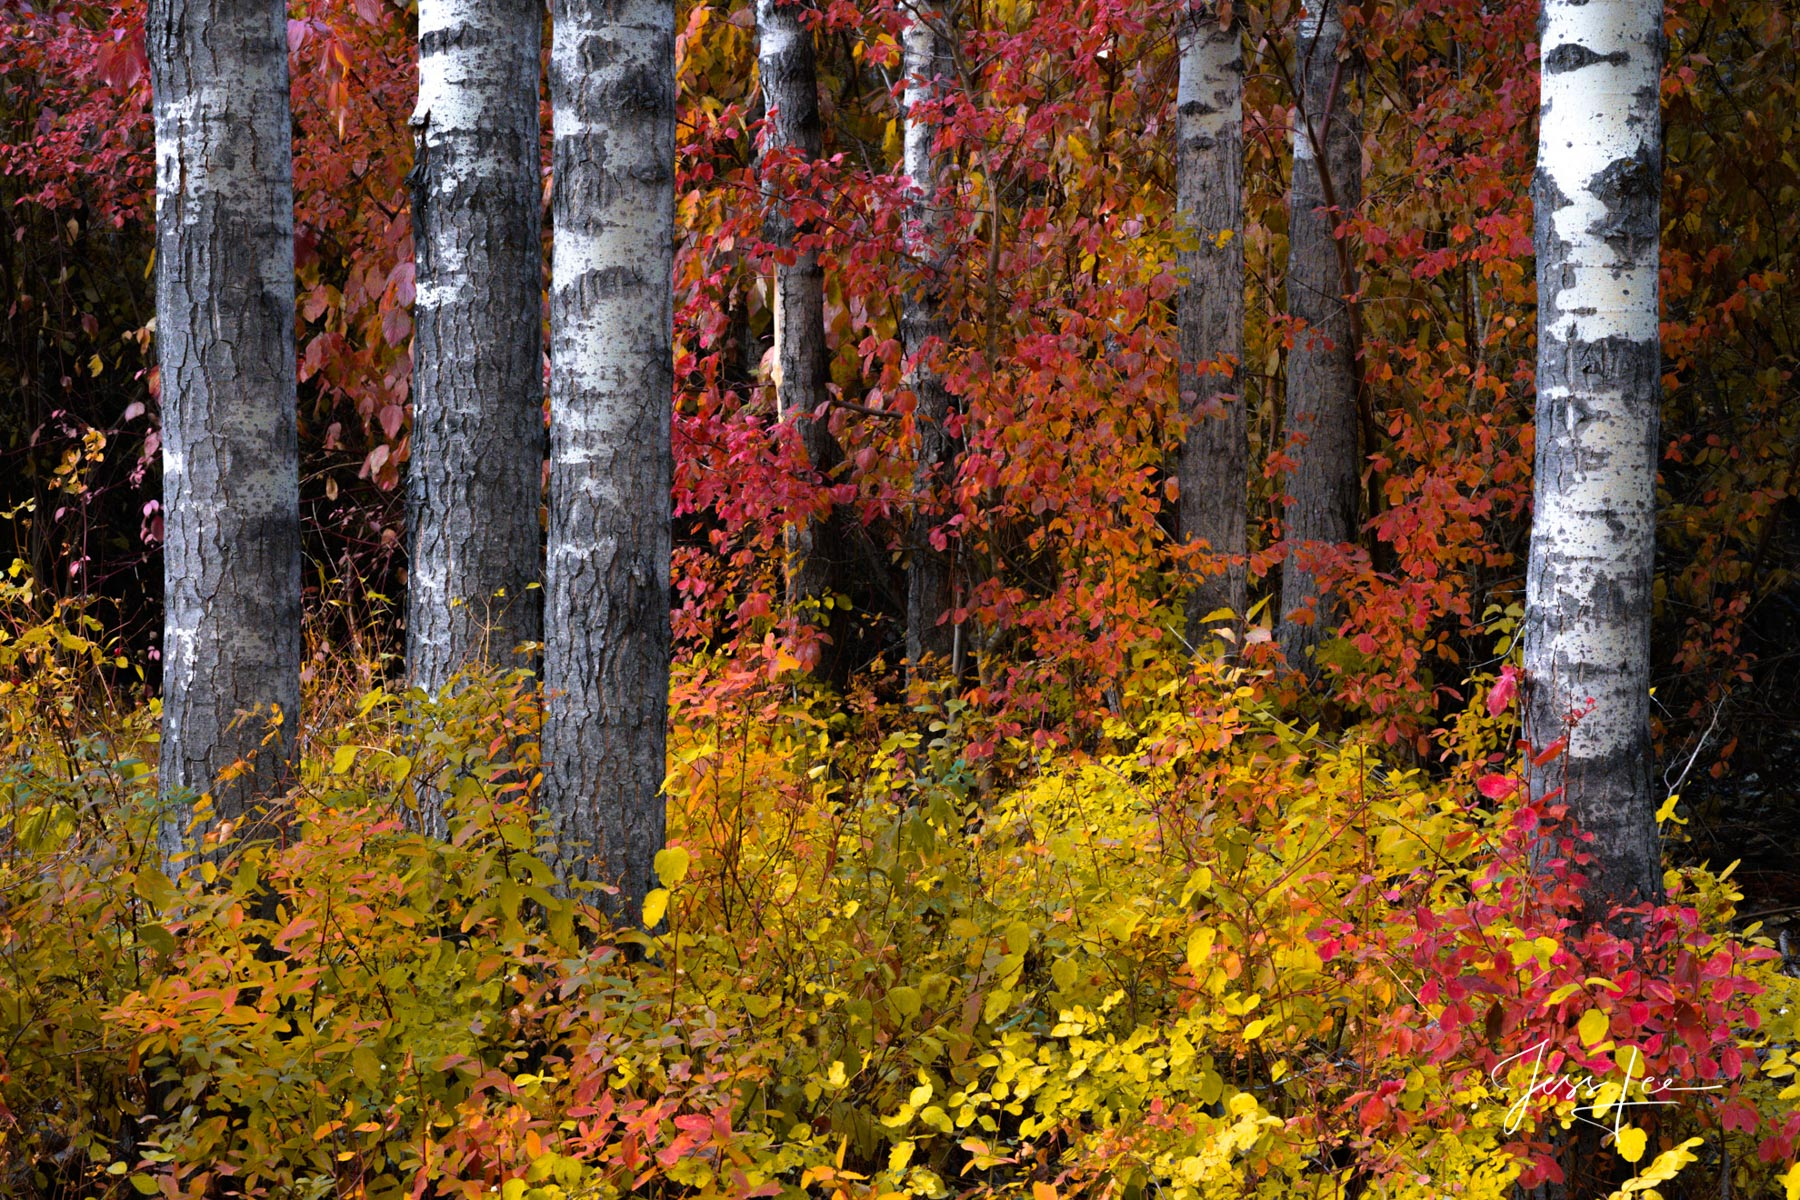 Fine Art Limited Edition of 200 Exclusive high-resolution Museum Quality Photography Prints of this Autumn Birch Tree Forest....